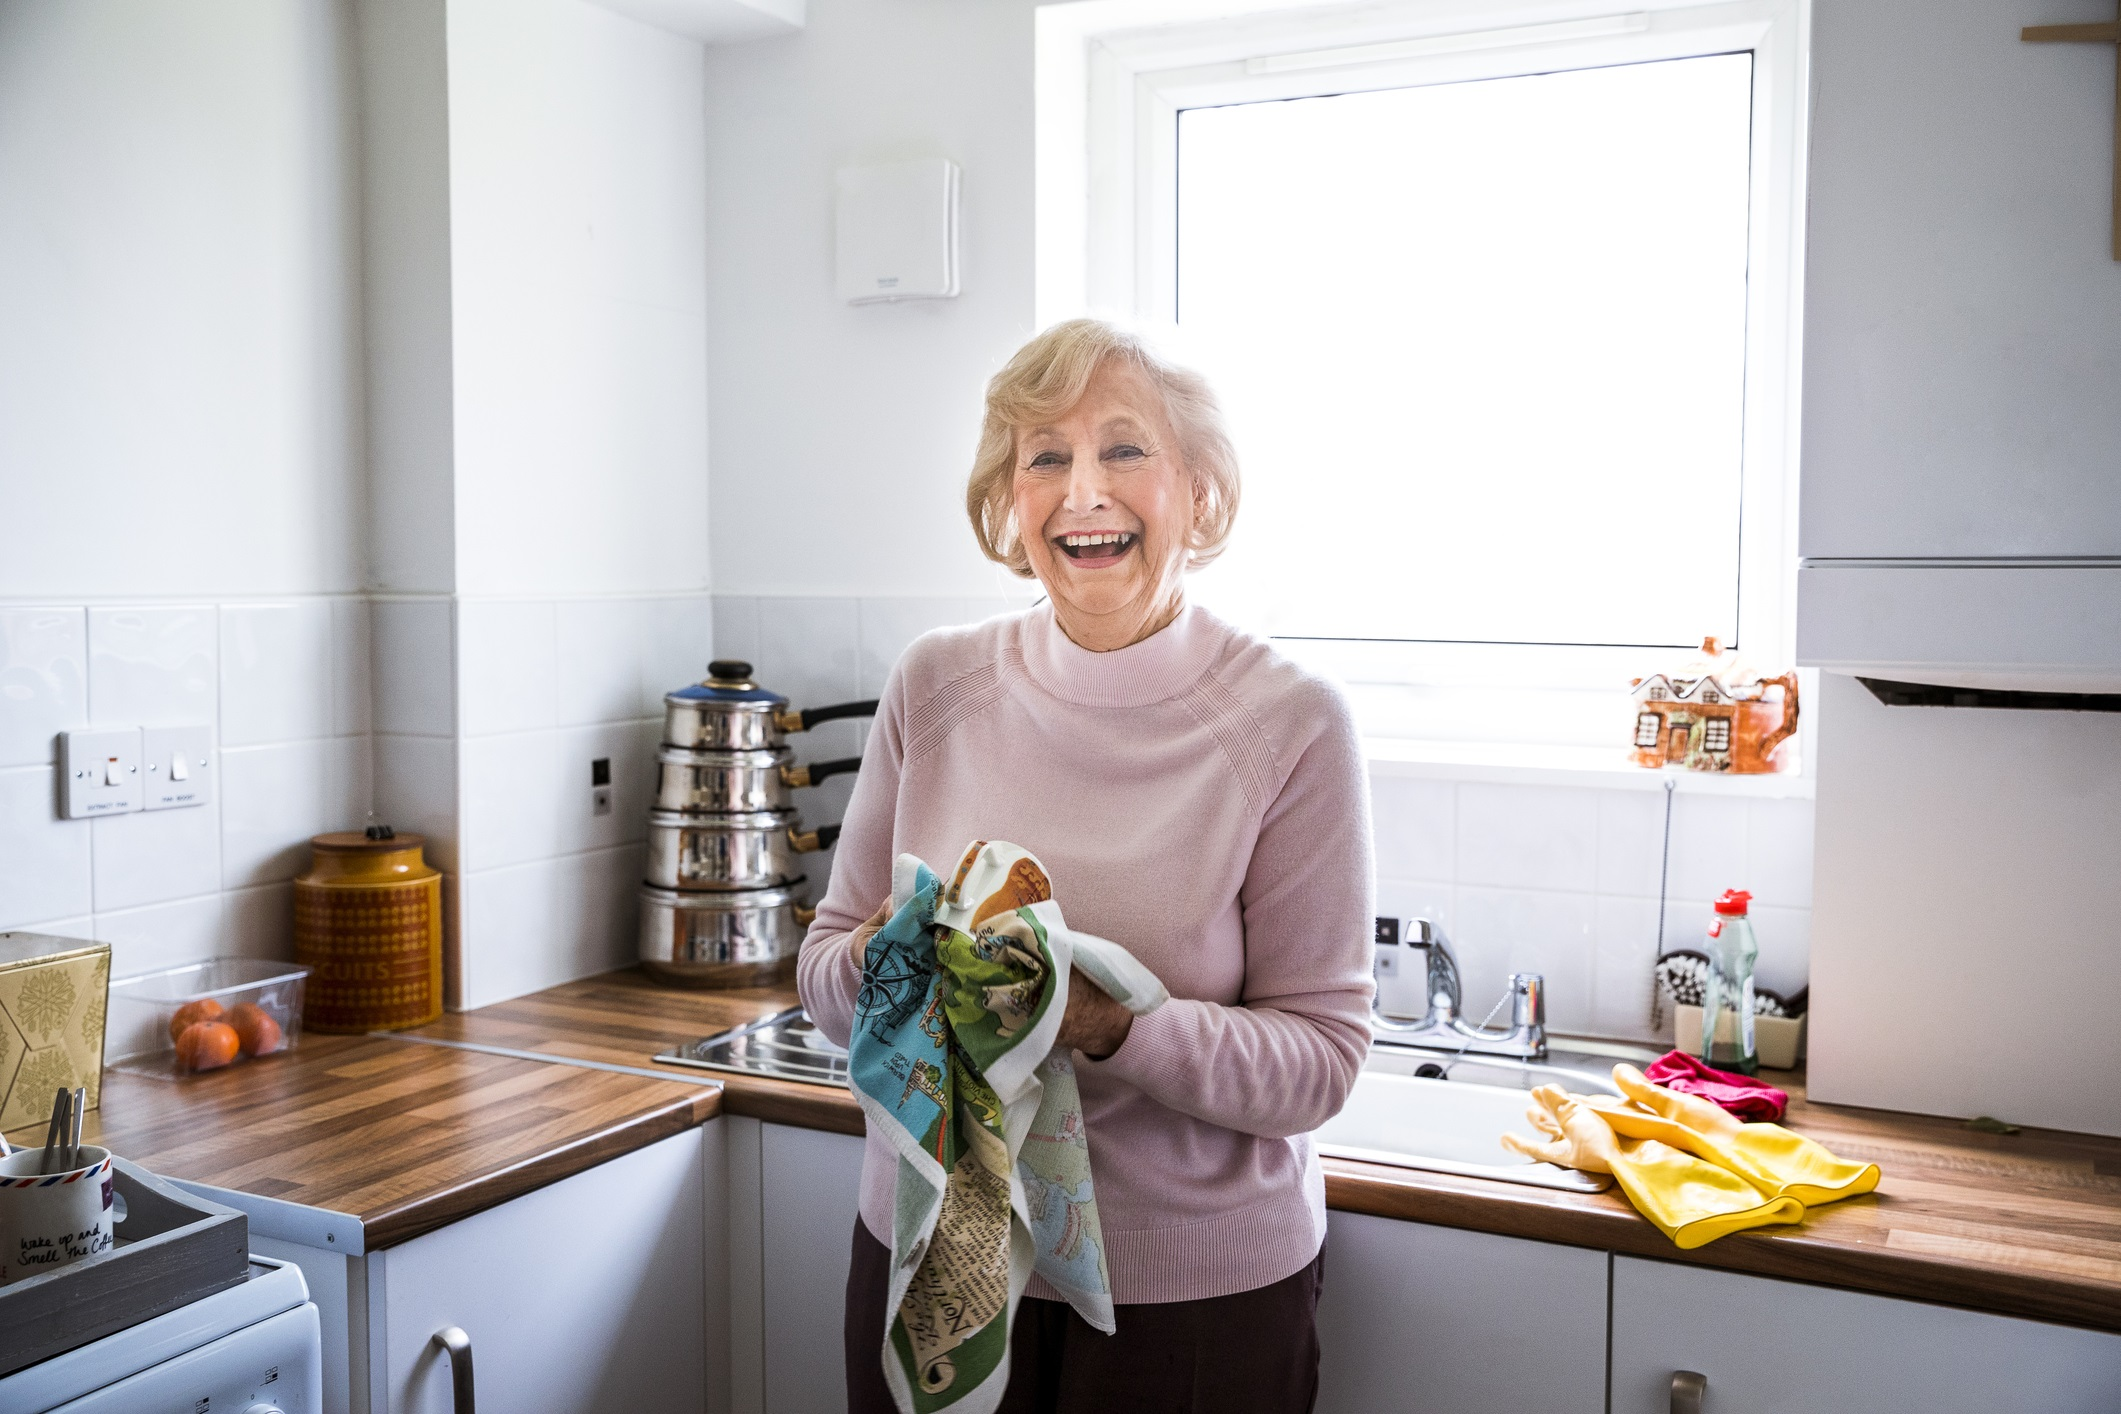 Senior lady laughing in kitchen